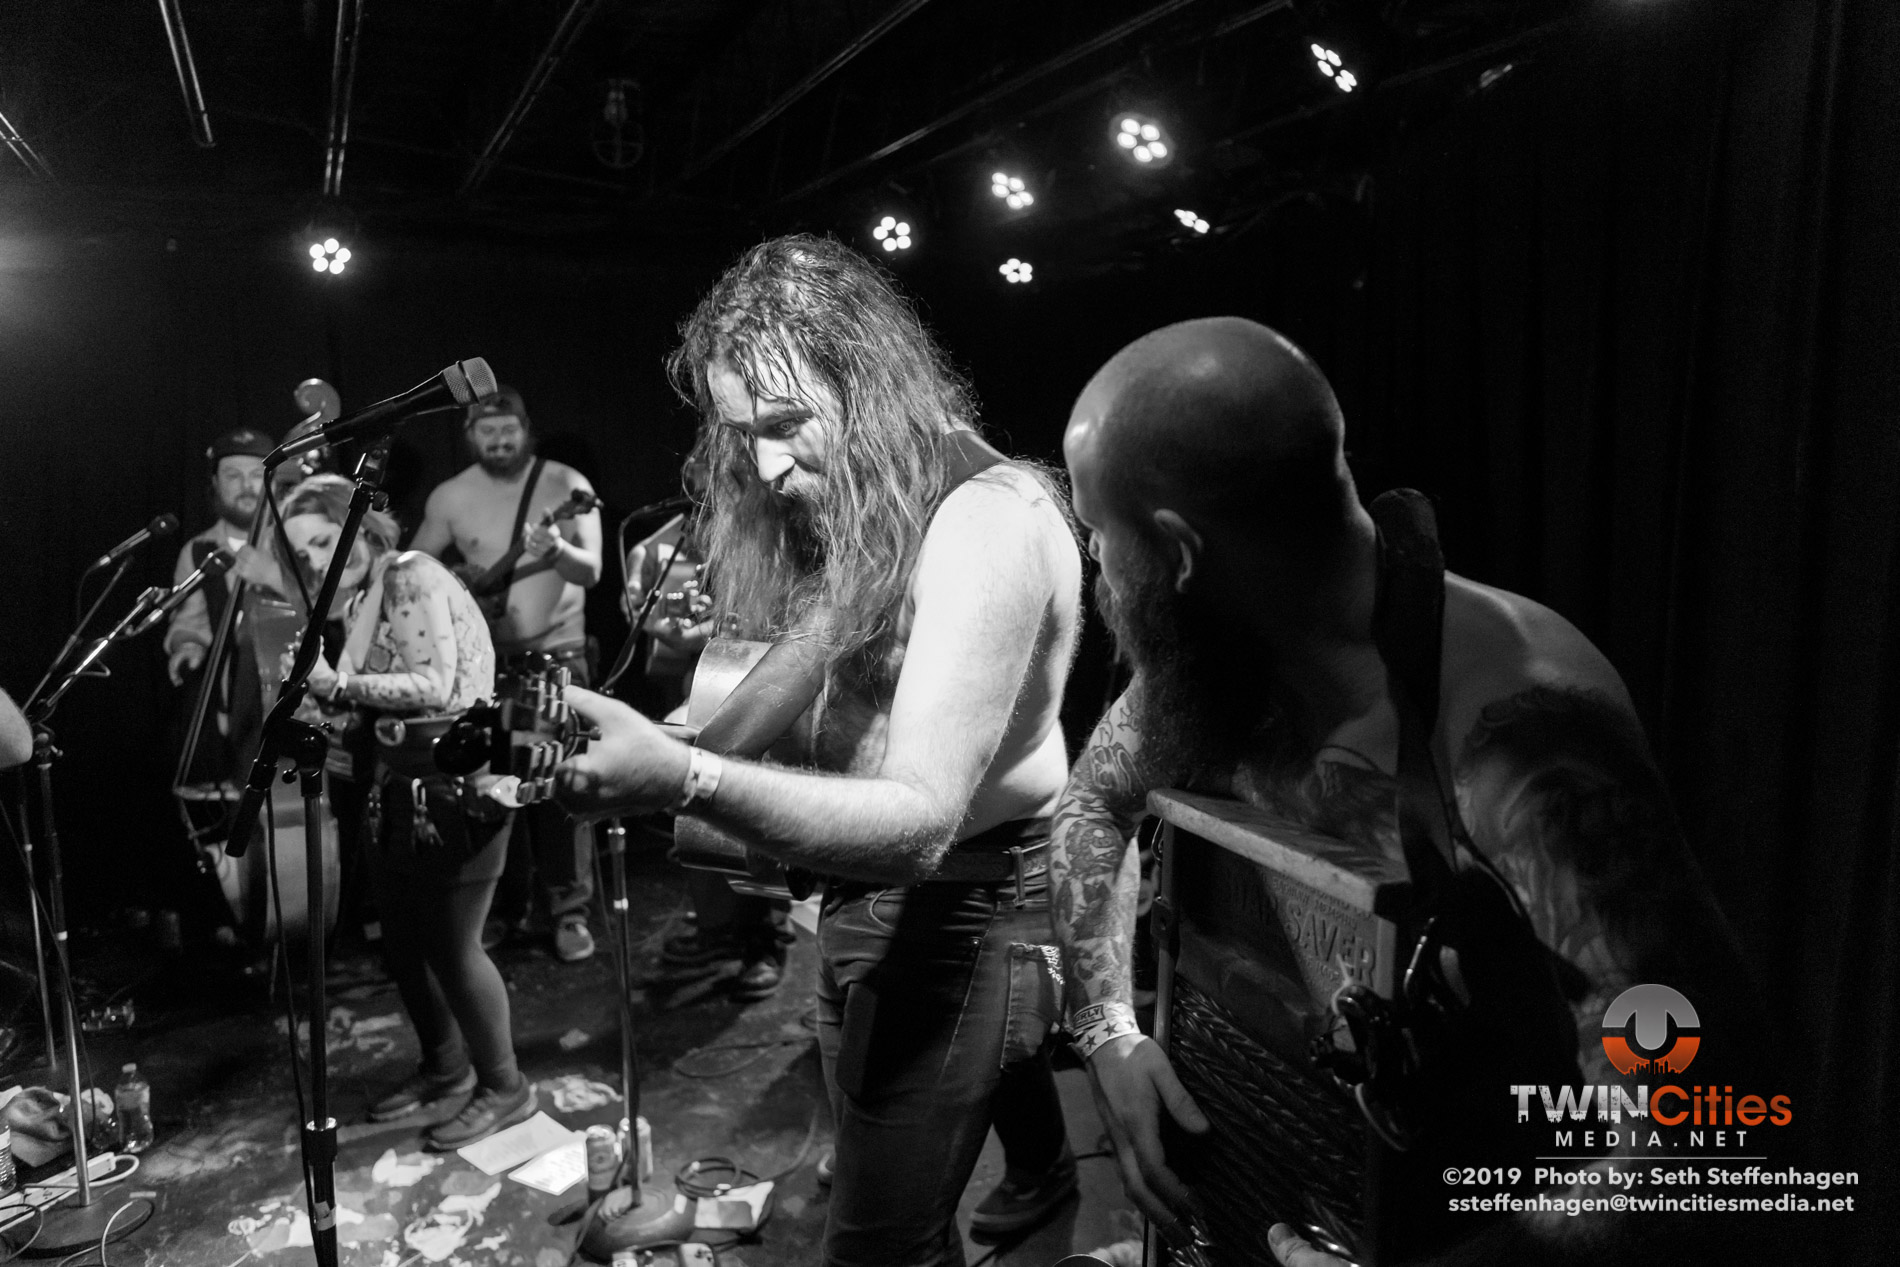 May 2, 2019 - Minneapolis, Minnesota, United States - Bridge City Sinners live in concert at the 7th Street Entry along with Tejon Street Corner Thieves and The Von Tramps as the openers.  (Photo by Seth Steffenhagen/Steffenhagen Photography)